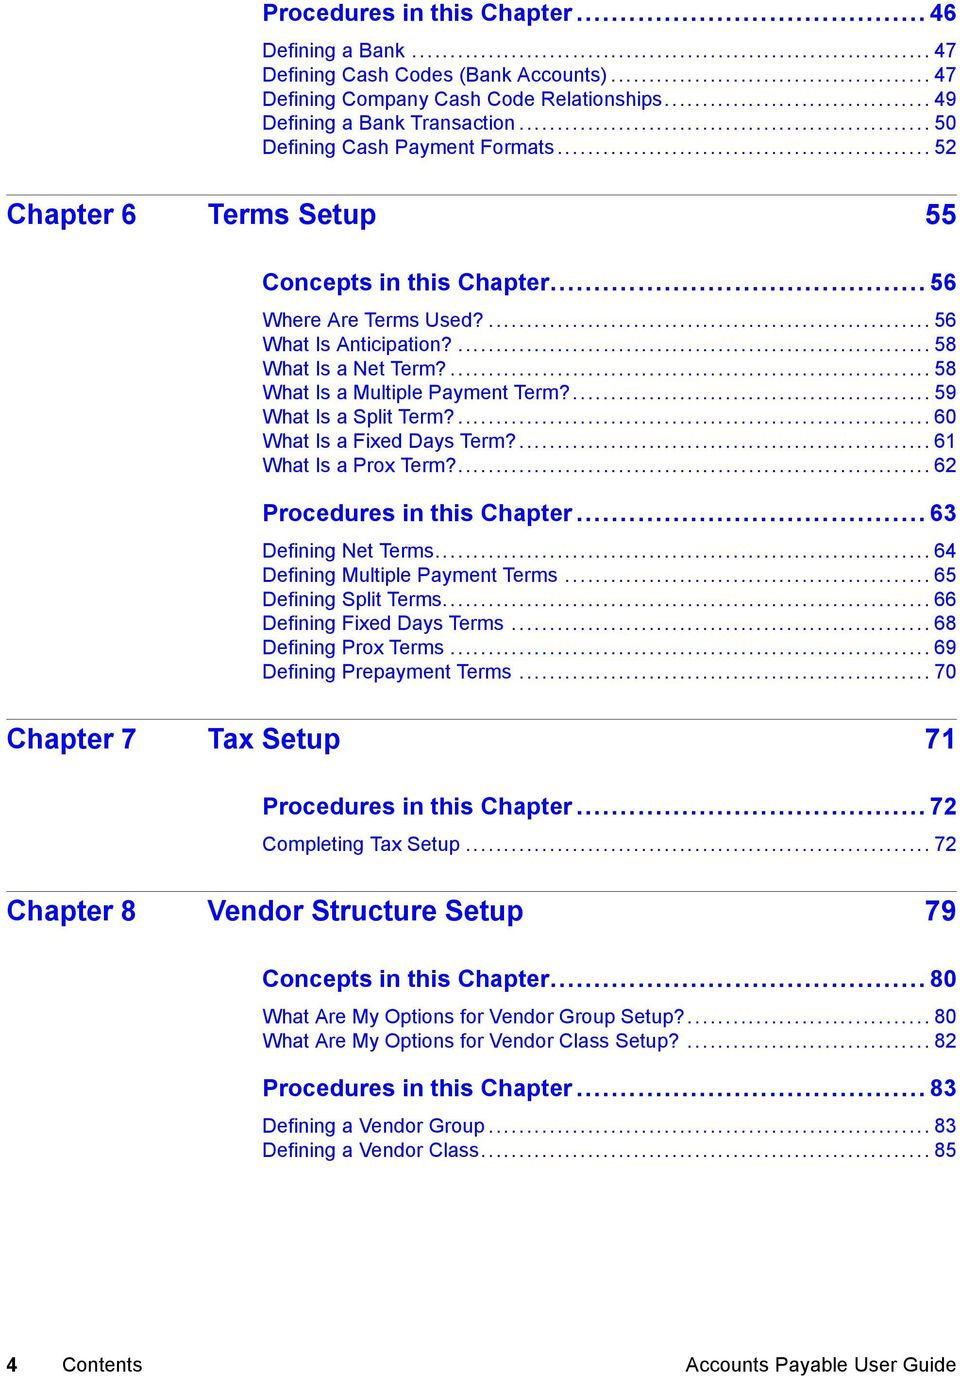 ... Accounts Payable User Guide ...58 What Is a Multiple Payment Term?...59  What